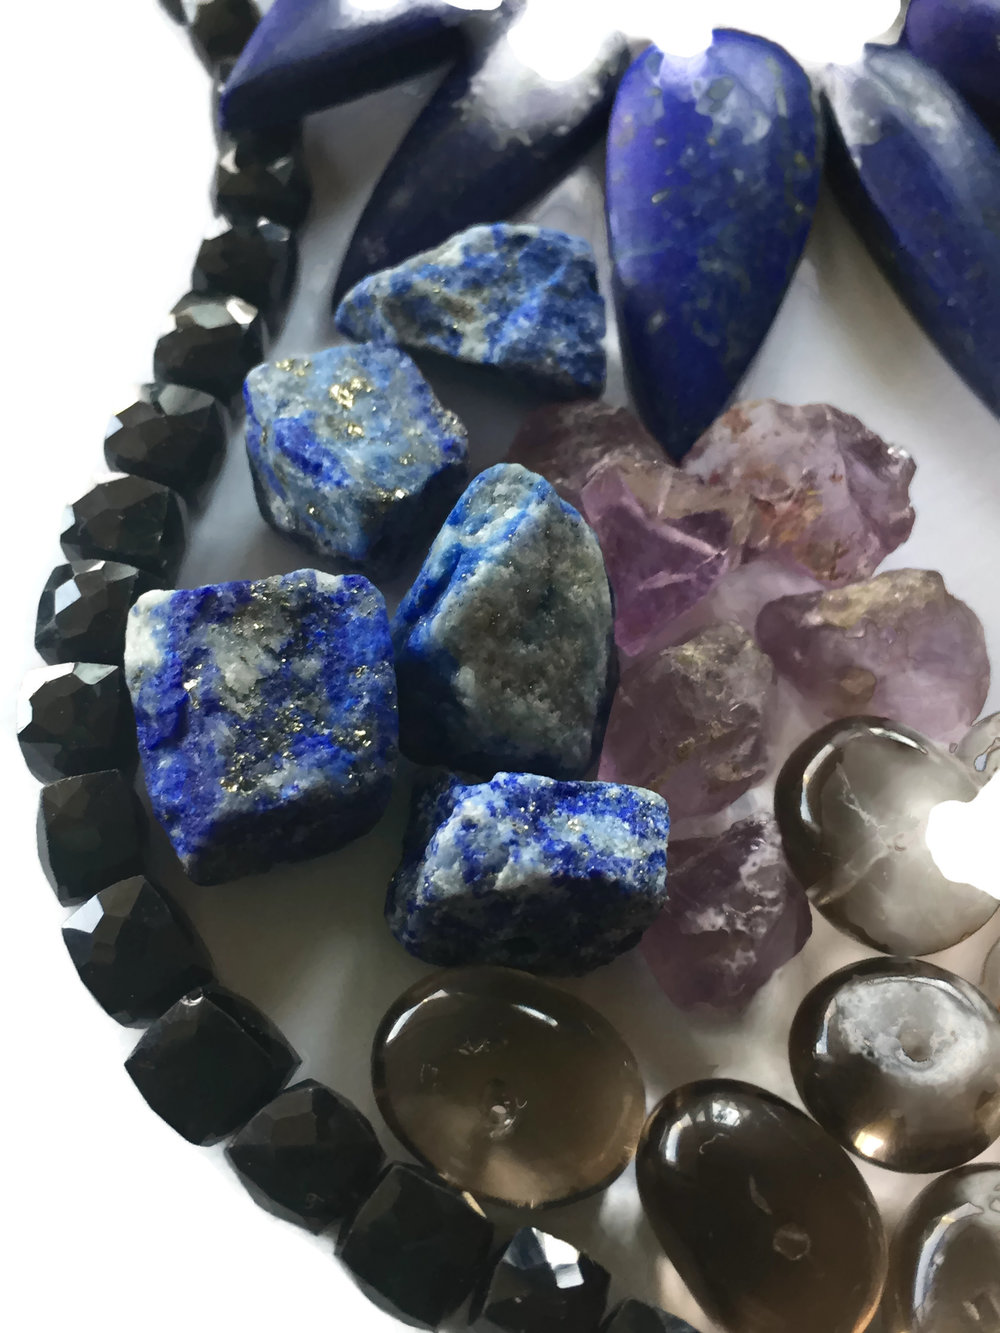 Saturn's gems protects one on travels + fights addictions + wards of negative energies + connects you to Spirit - Gems: Blue Sapphire, Blue Zircon, Amethyst, Lapis Lazuli, Blue Spinel, Black Onyx, Smokey Quartz